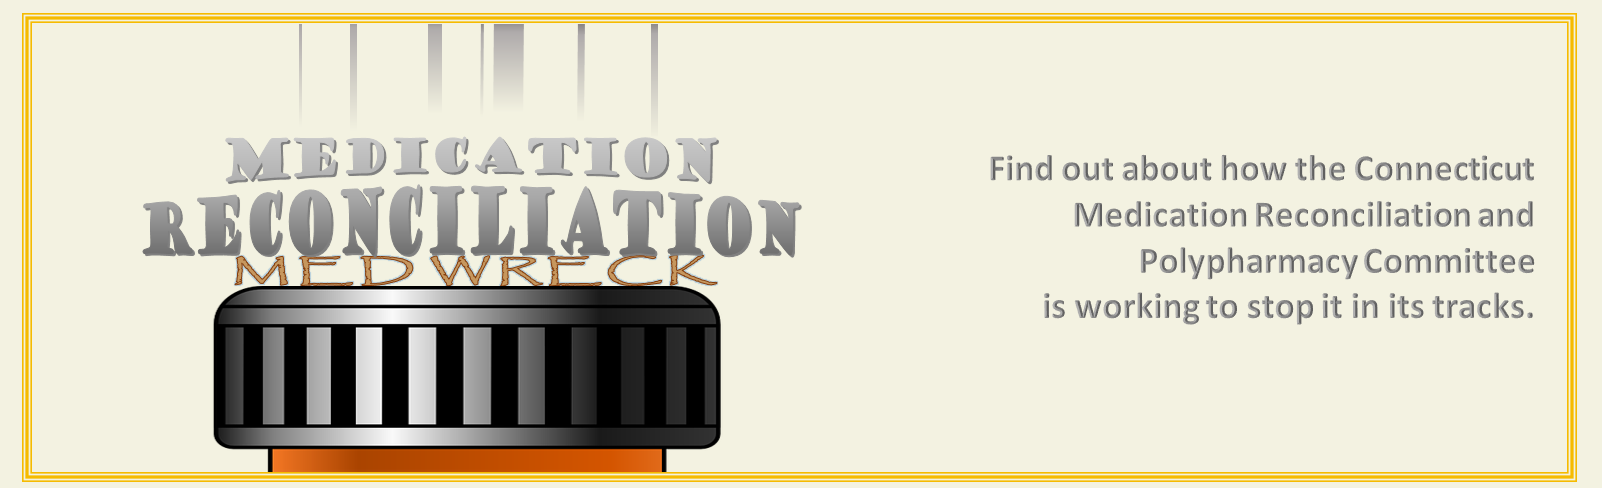 Medication Reconciliation and Polypharmacy Committee Info Banner